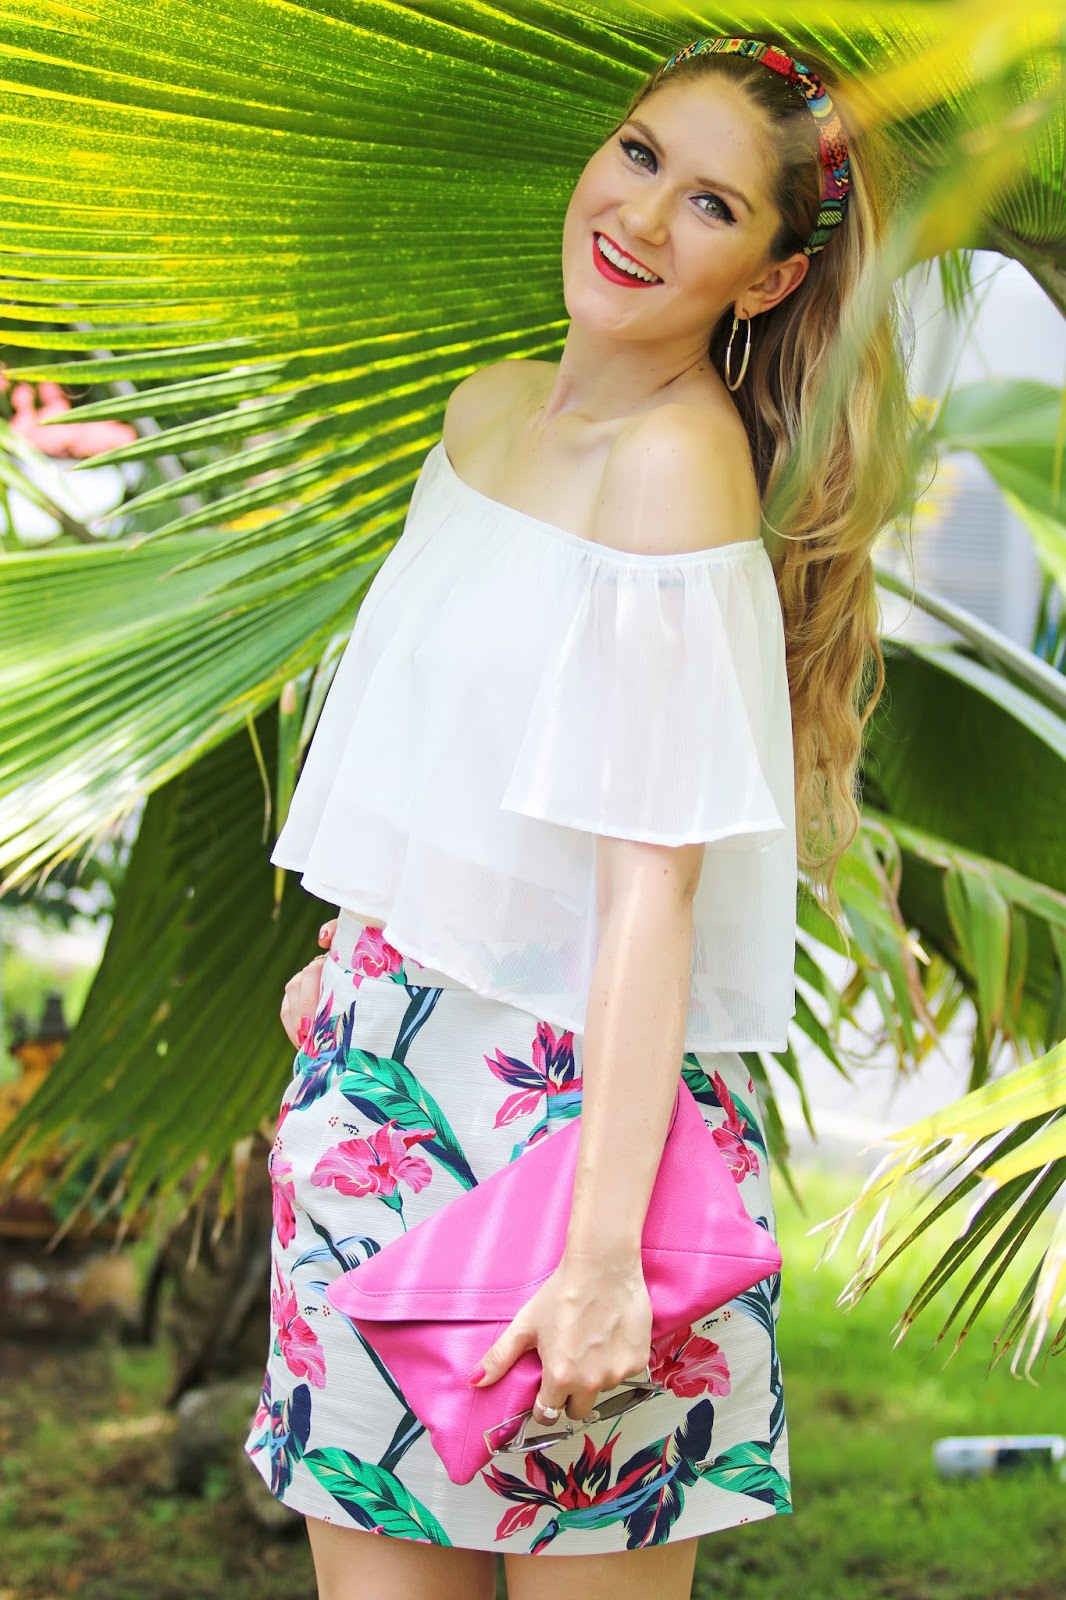 Tropical Outfit for a hot Summer Day!